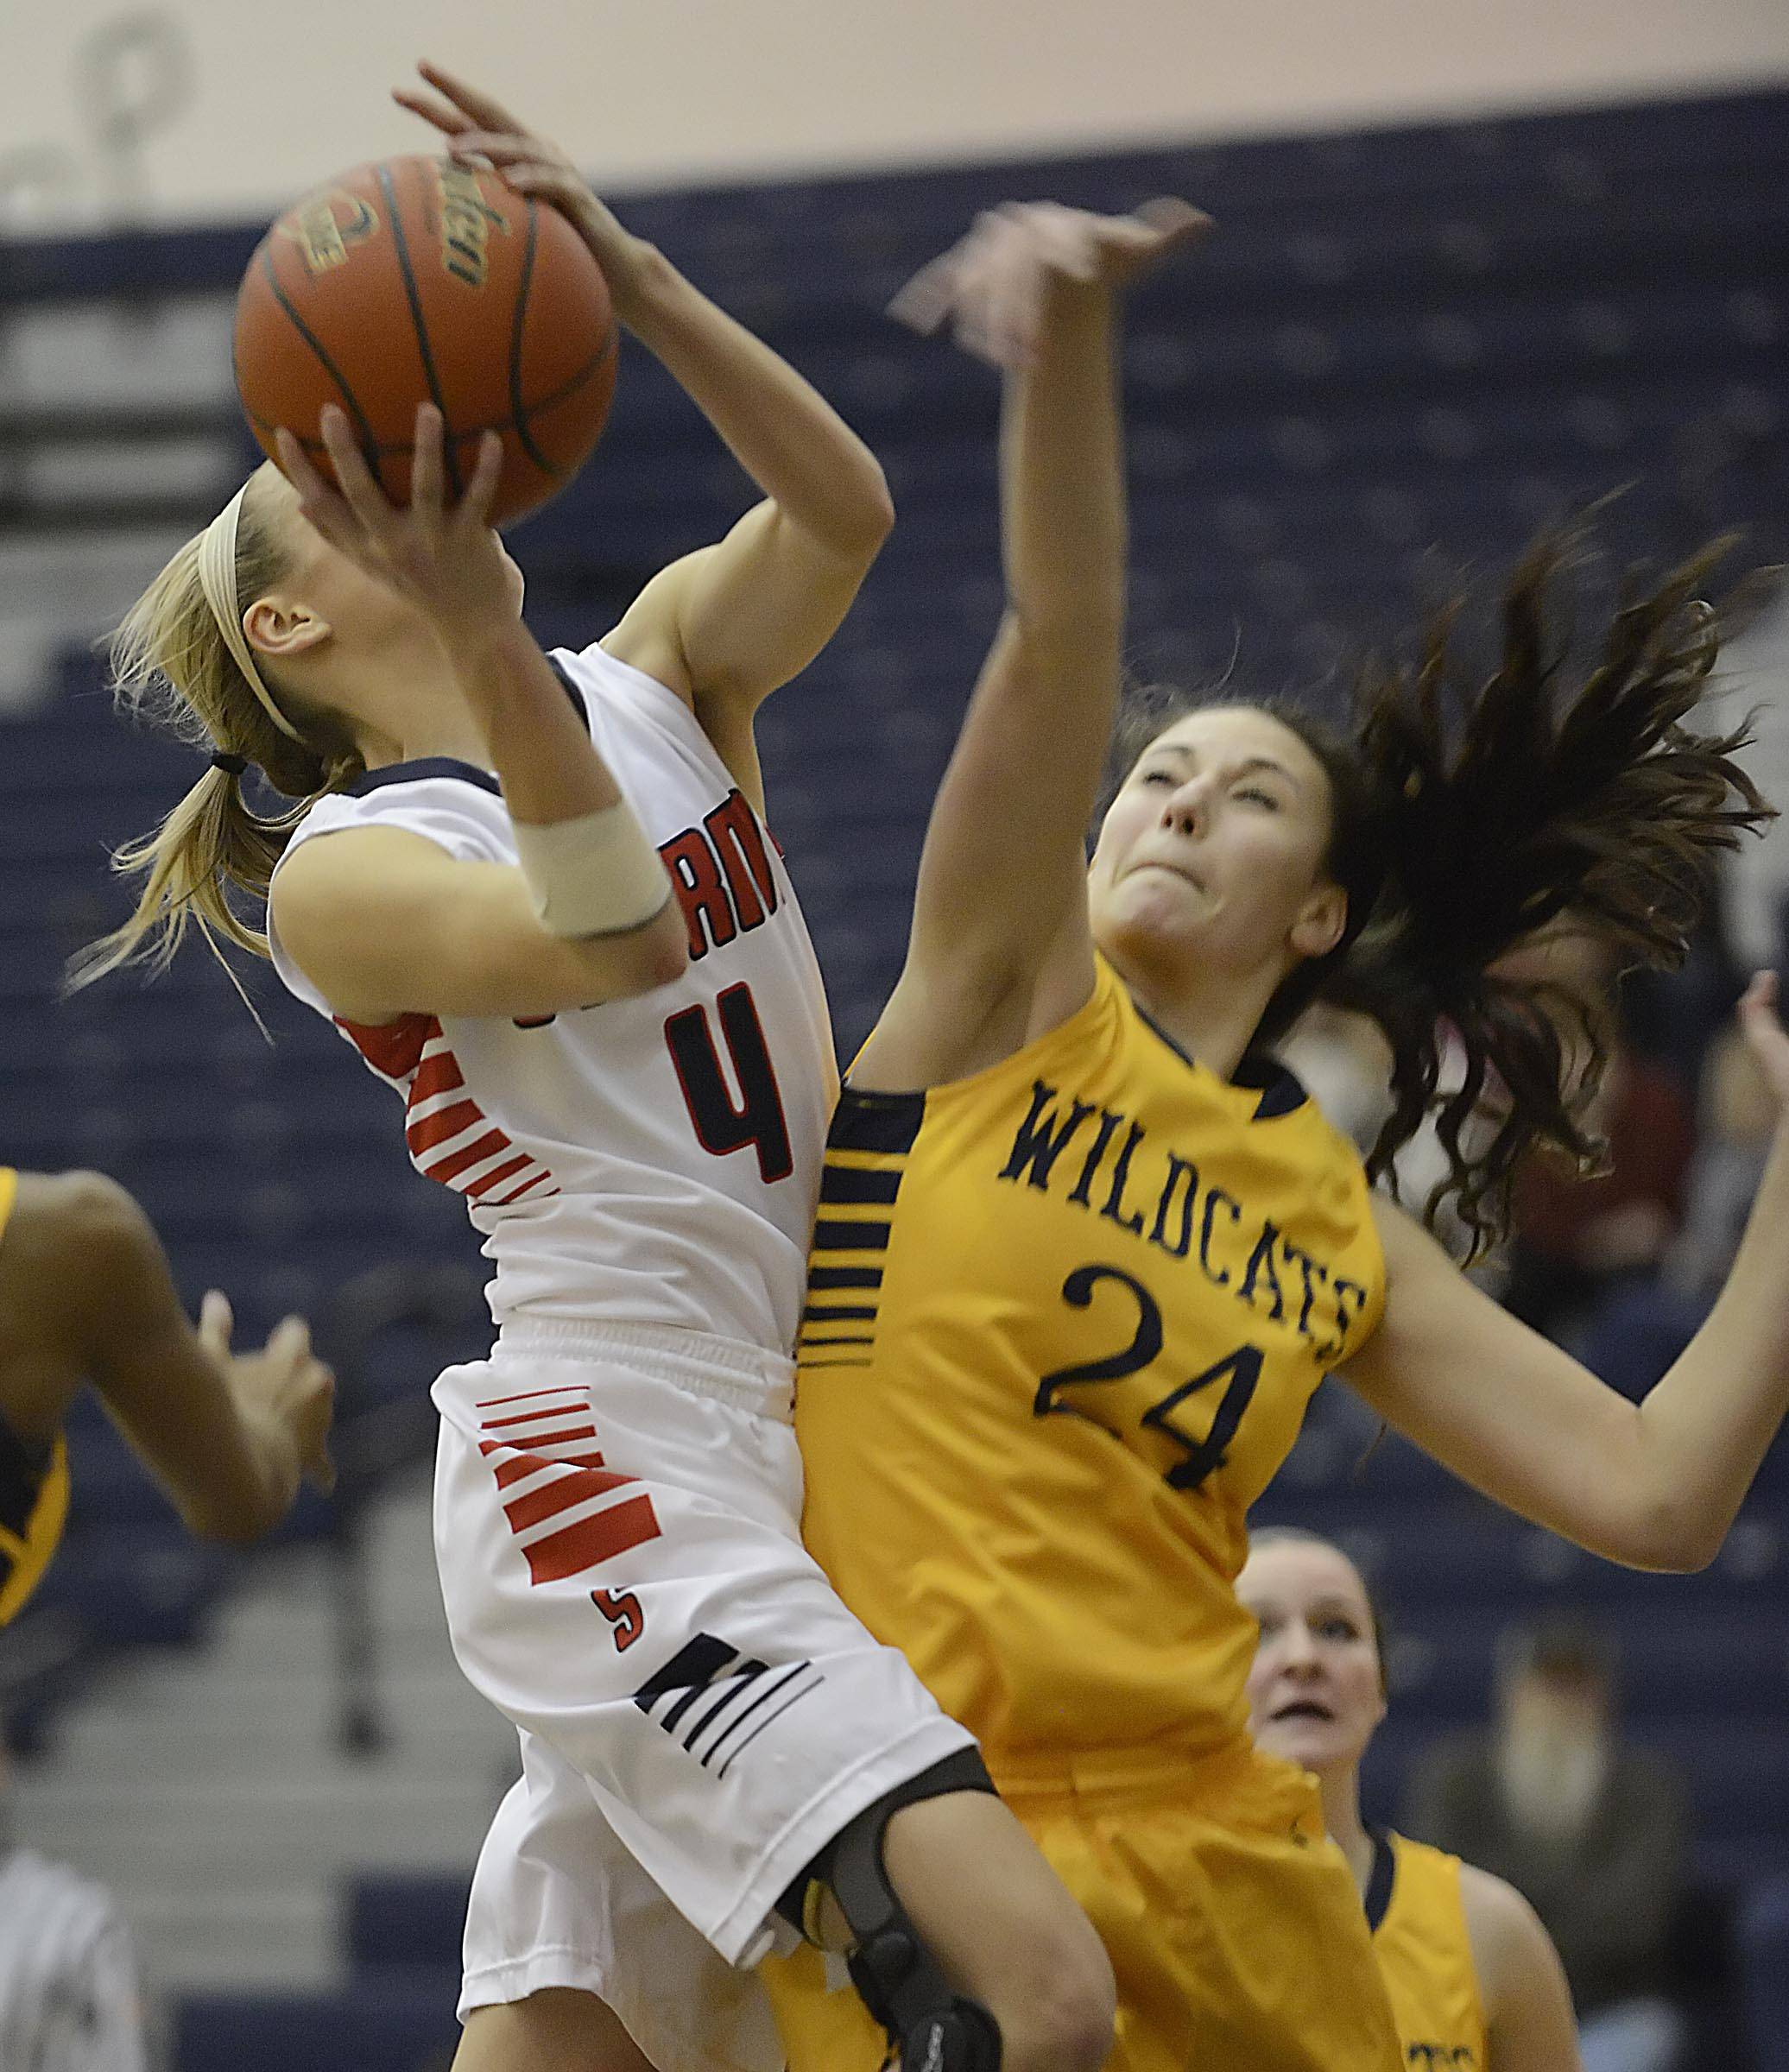 South Elgin's Savanah Uvegas is fouled by Neuqua Valley's Bryce Menendez Monday in South Elgin.